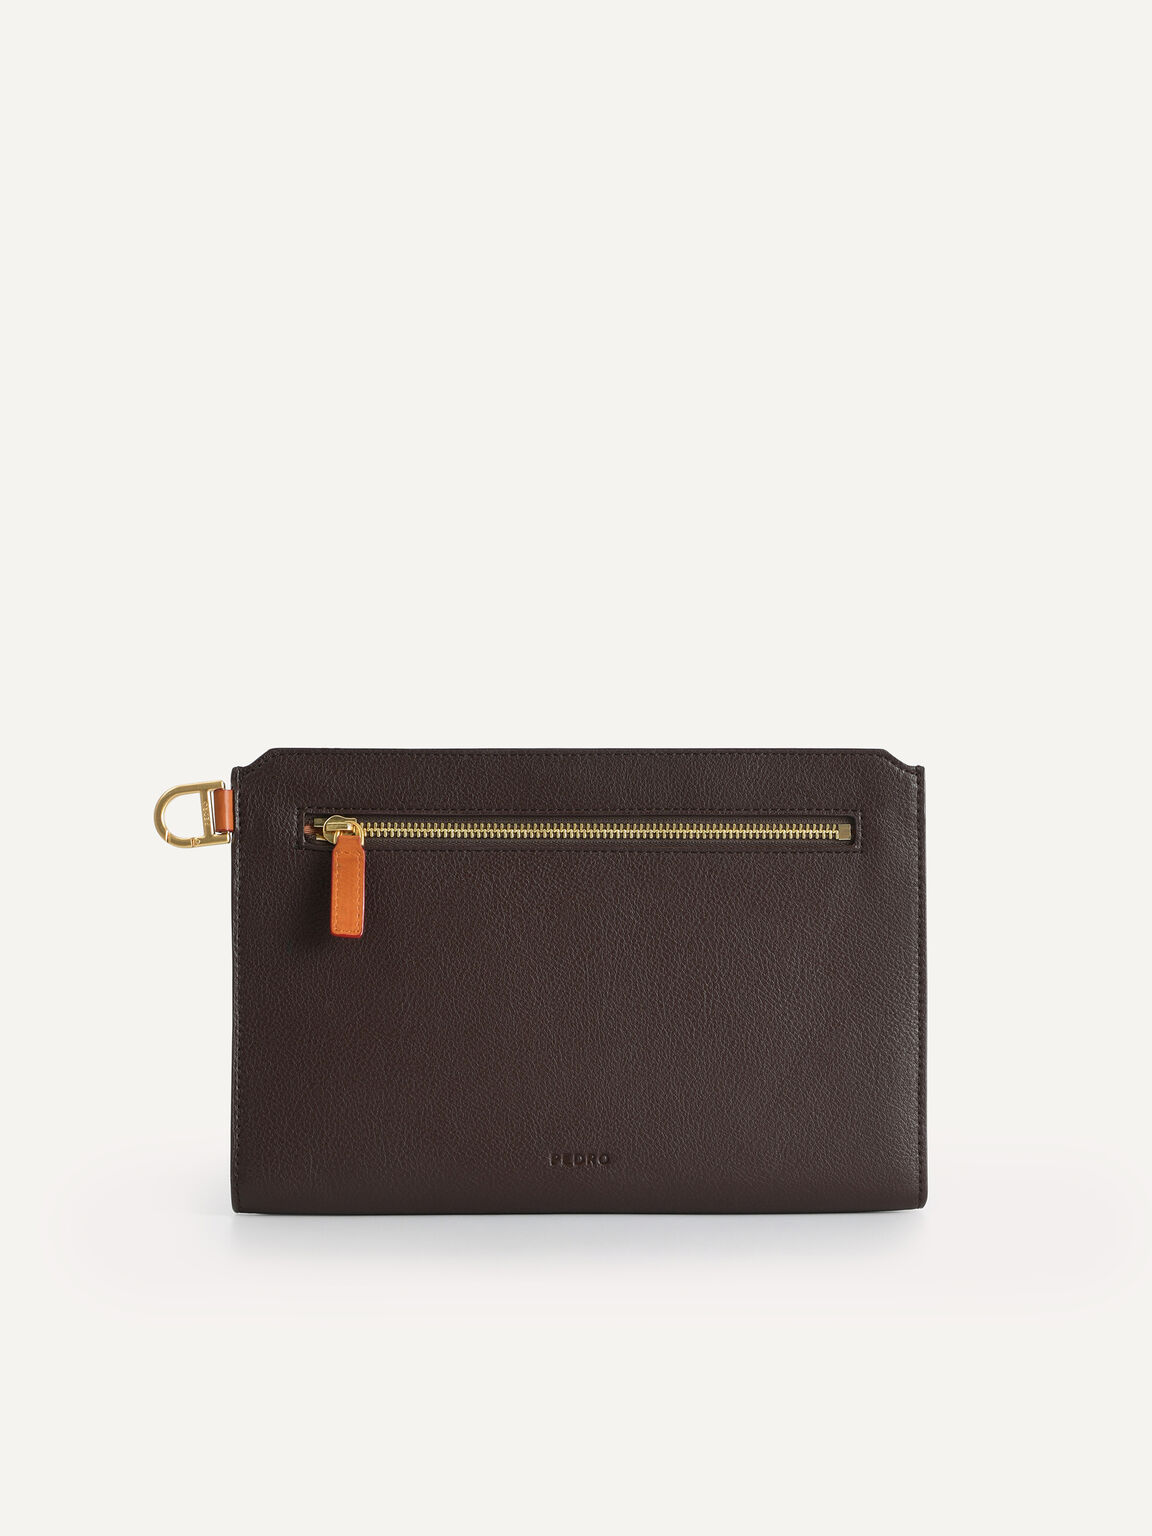 Textured Clutch with Keychain, Brown, hi-res